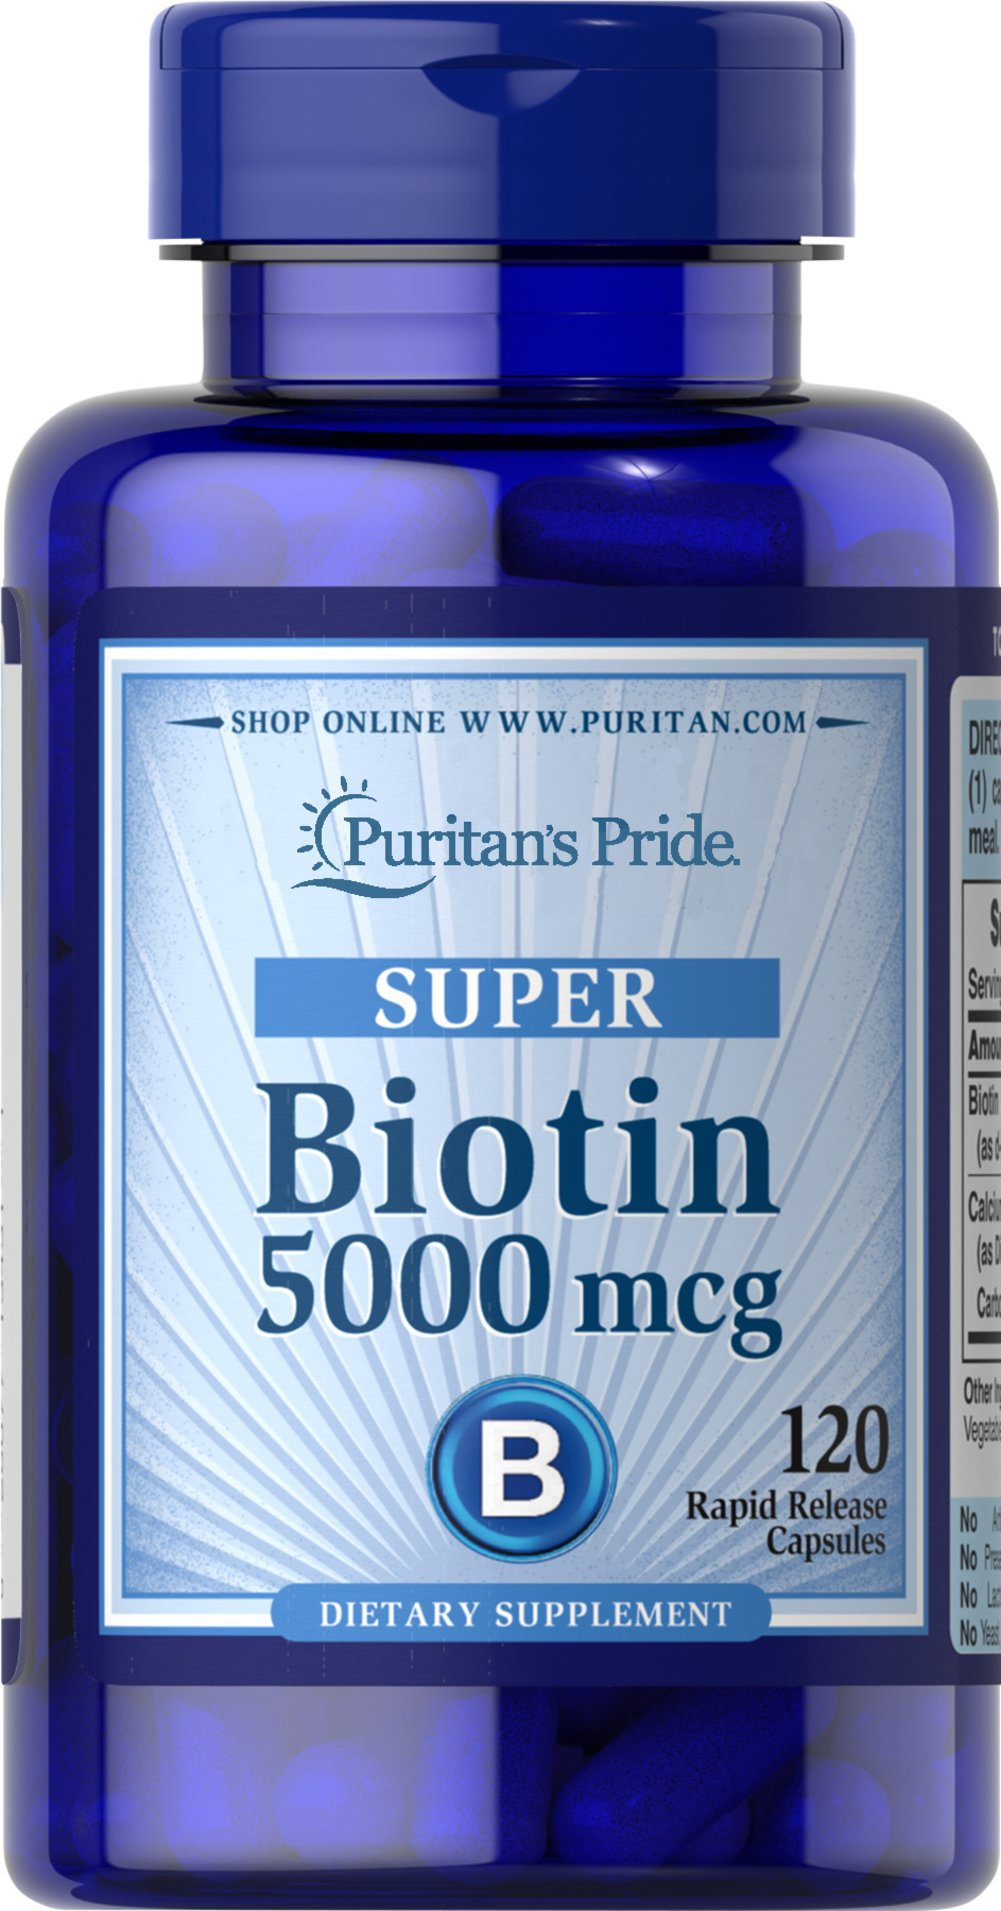 Biotin 5000 mcg <p>Supports Skin & Hair Health**</p><p>Found in foods such as oatmeal and soy, Biotin, a water-soluble B vitamin, assists in energy metabolism in cells.** Biotin helps to support healthy skin and hair.**</p>   120 Capsules 5000 mcg $15.99